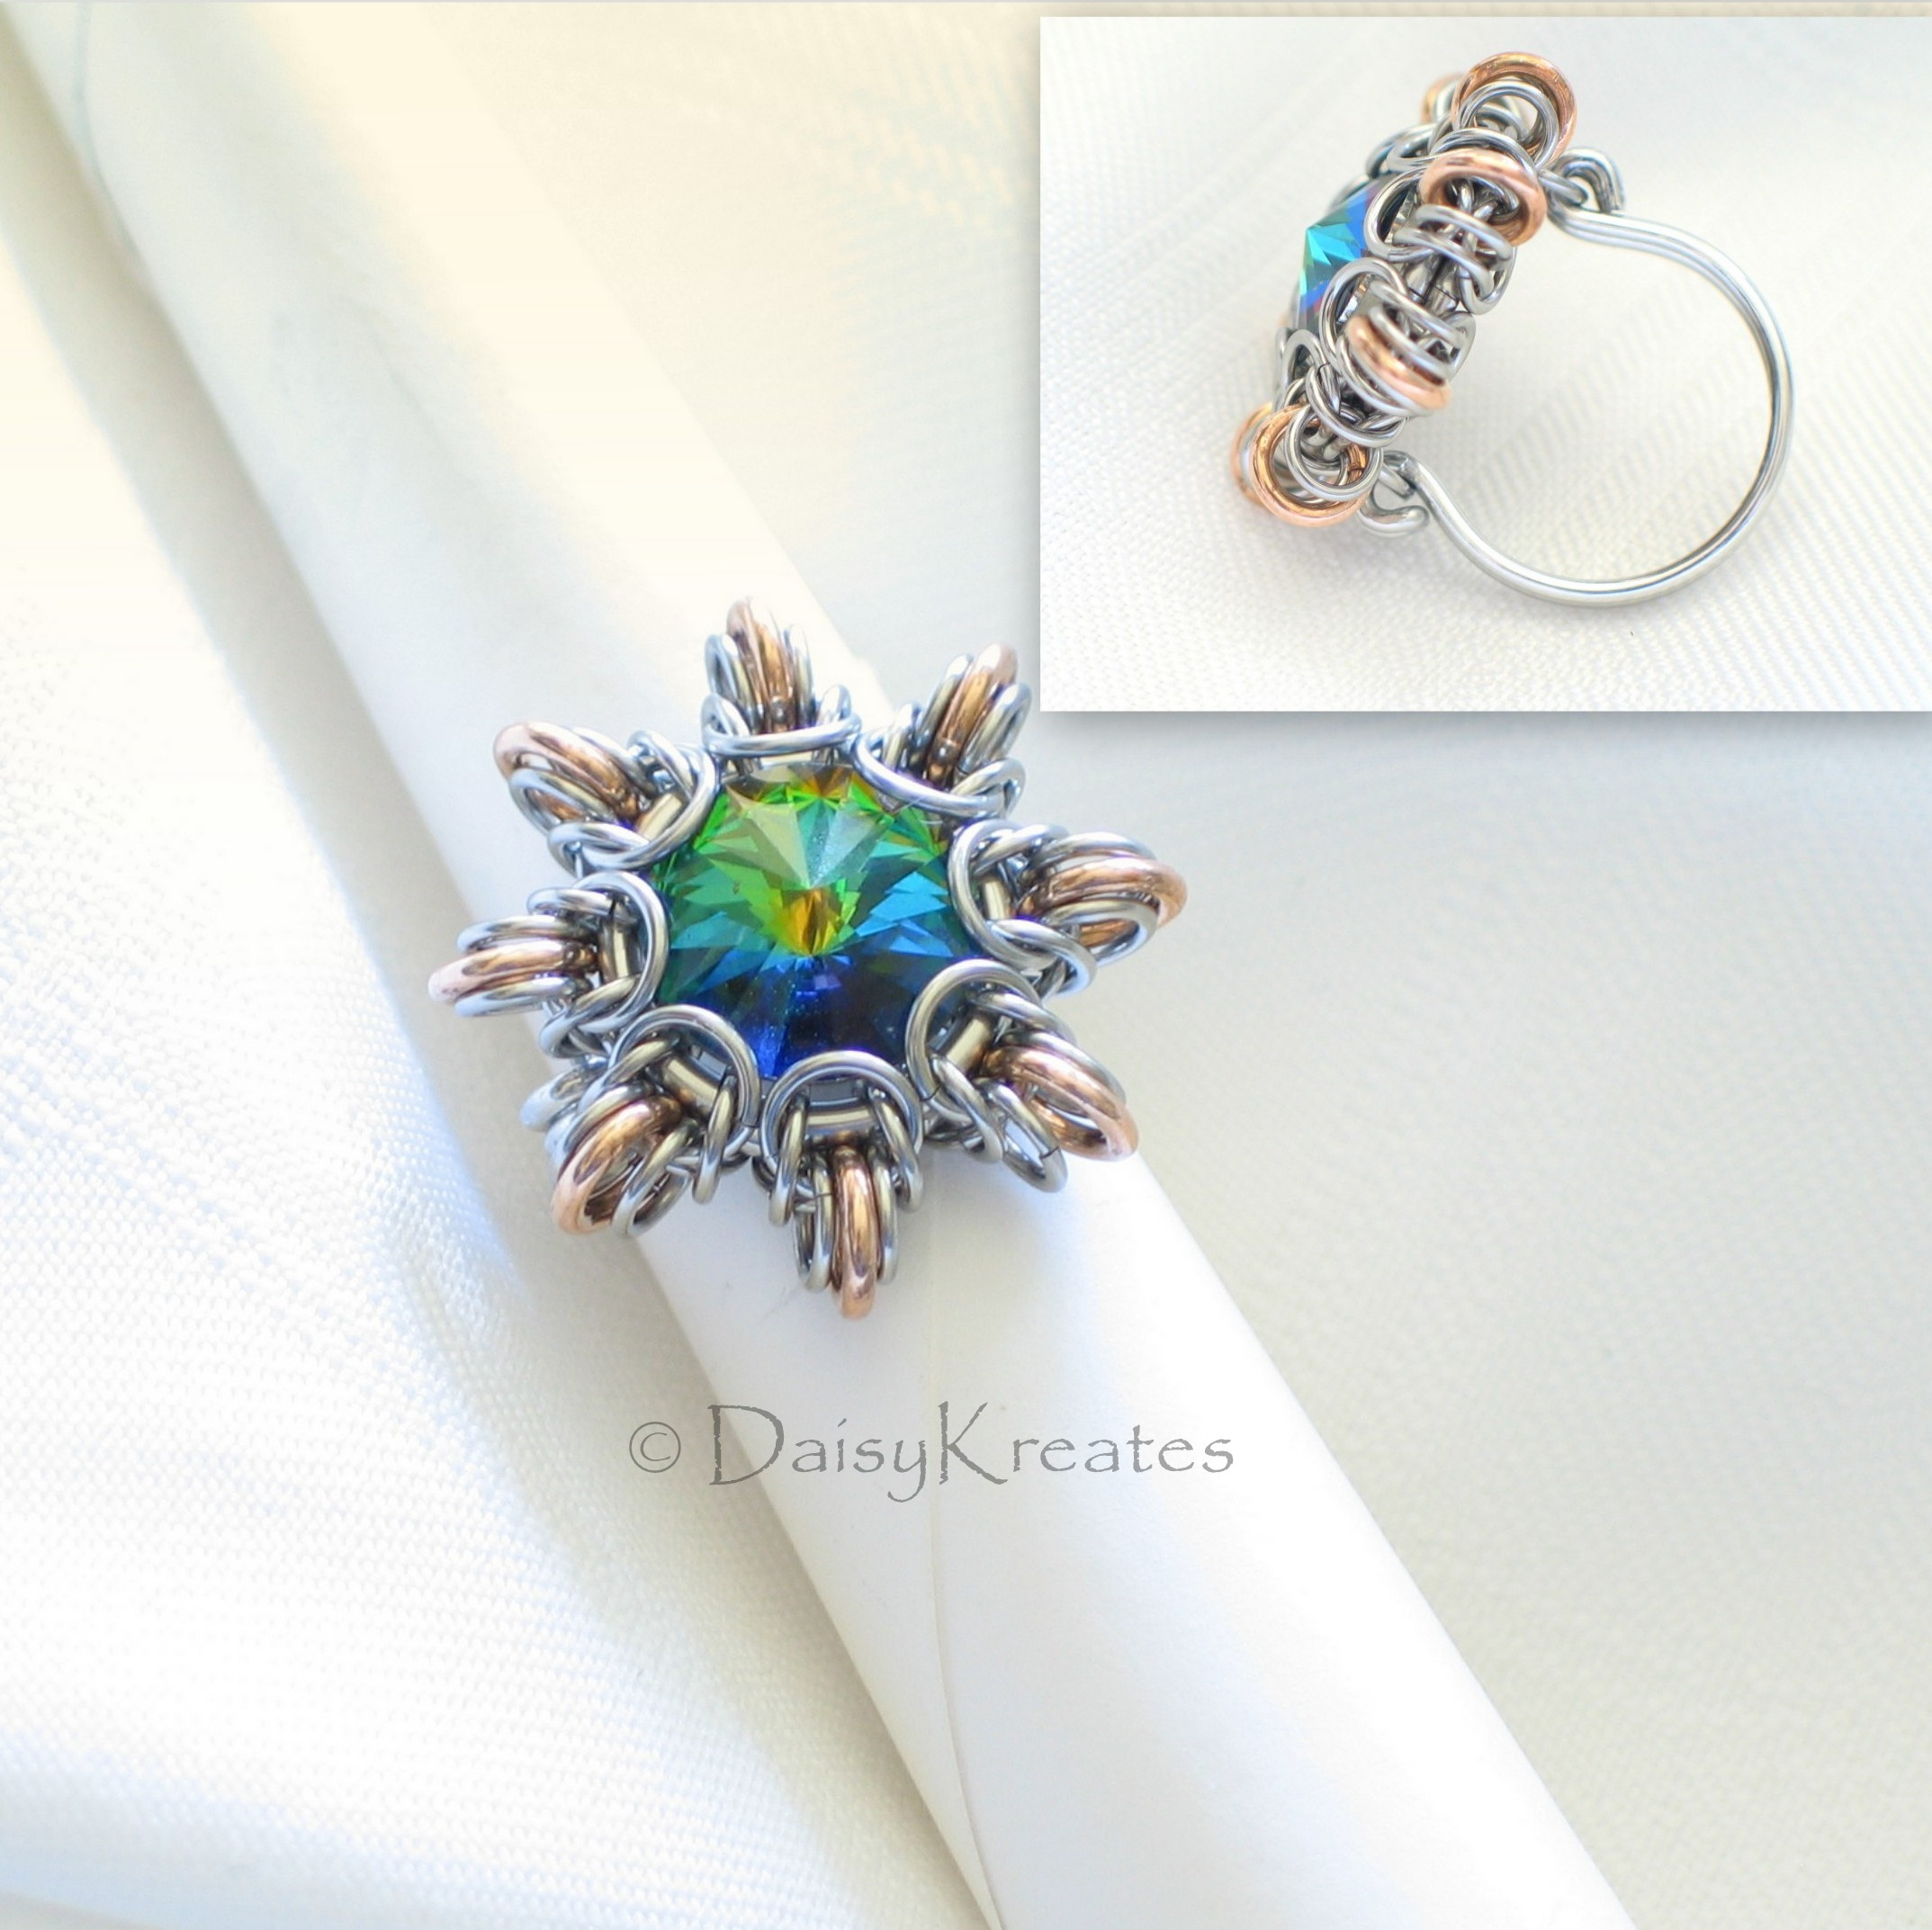 nightshade moonstone rings share silver rainbow shop ring thumb dixi boho products sterling